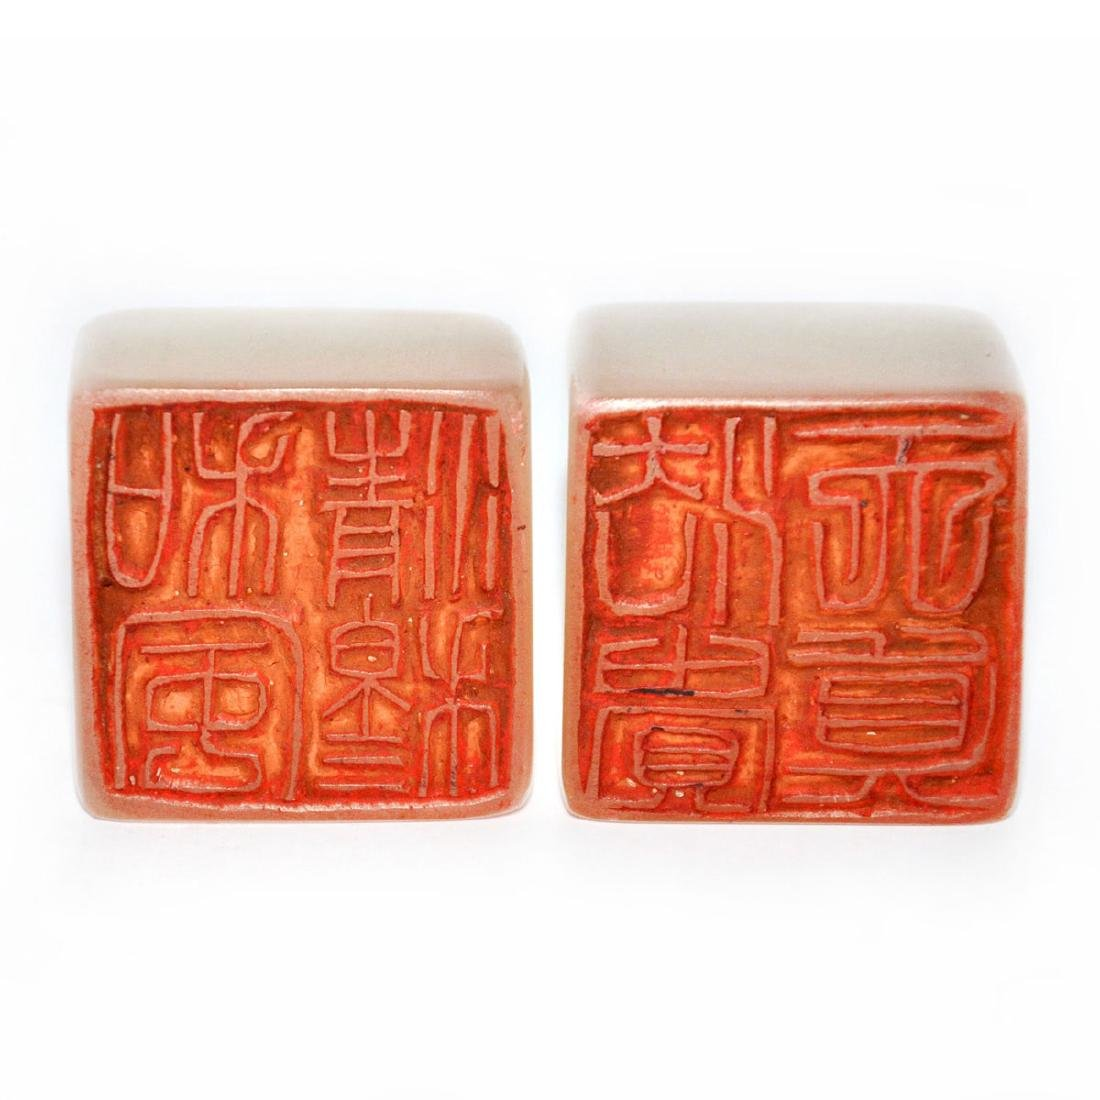 A Pair of Furong Stone Seal with Bixie Knop - 6